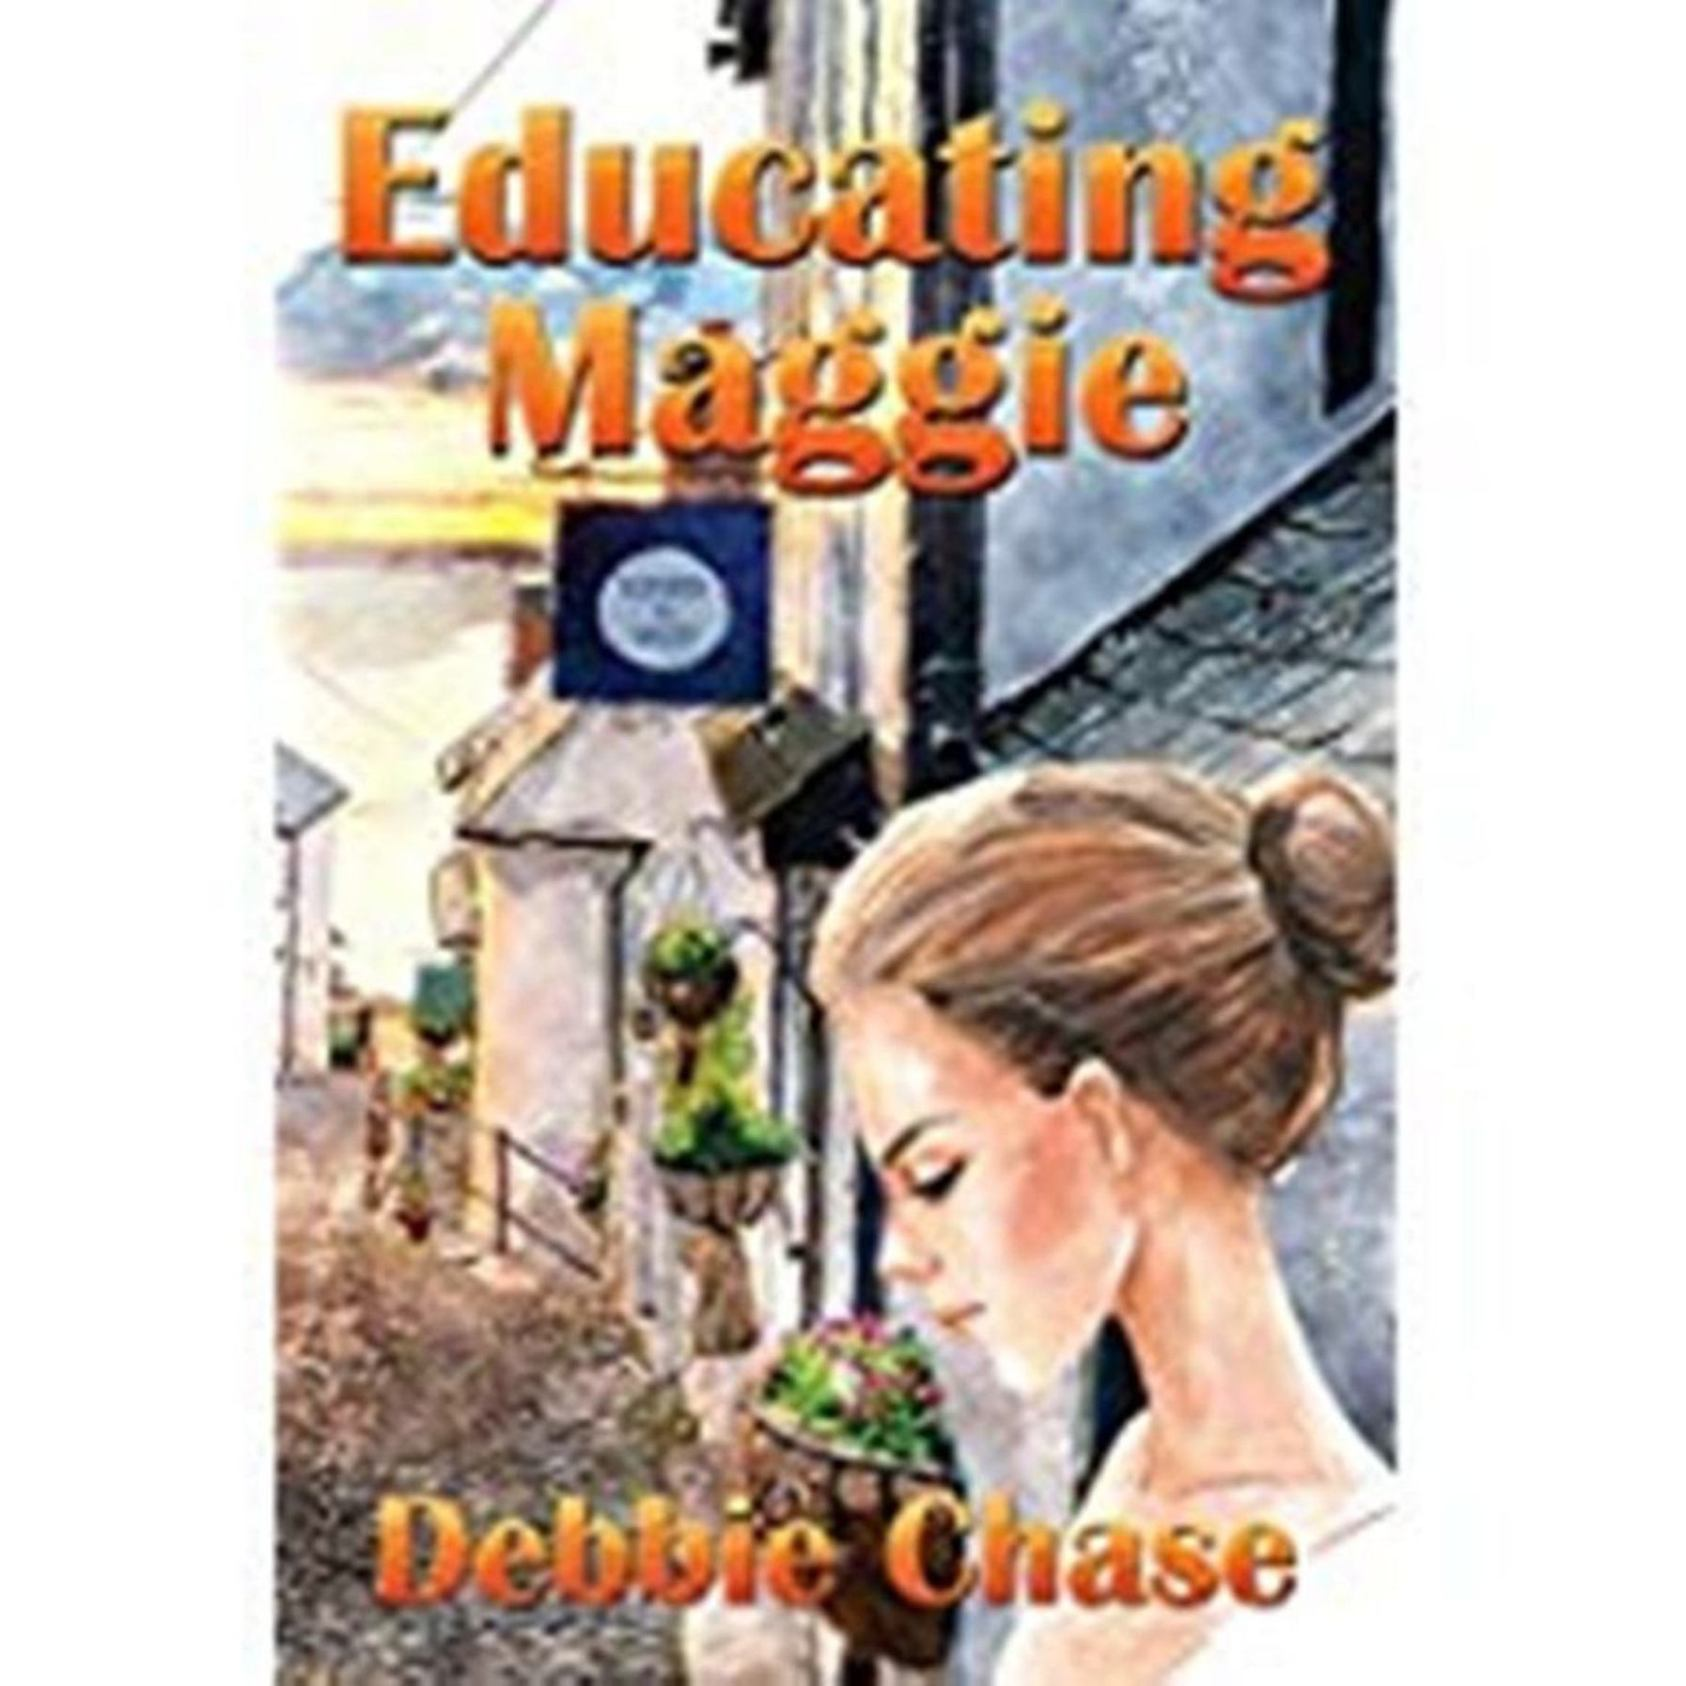 Educating Maggie by Debbie Chase